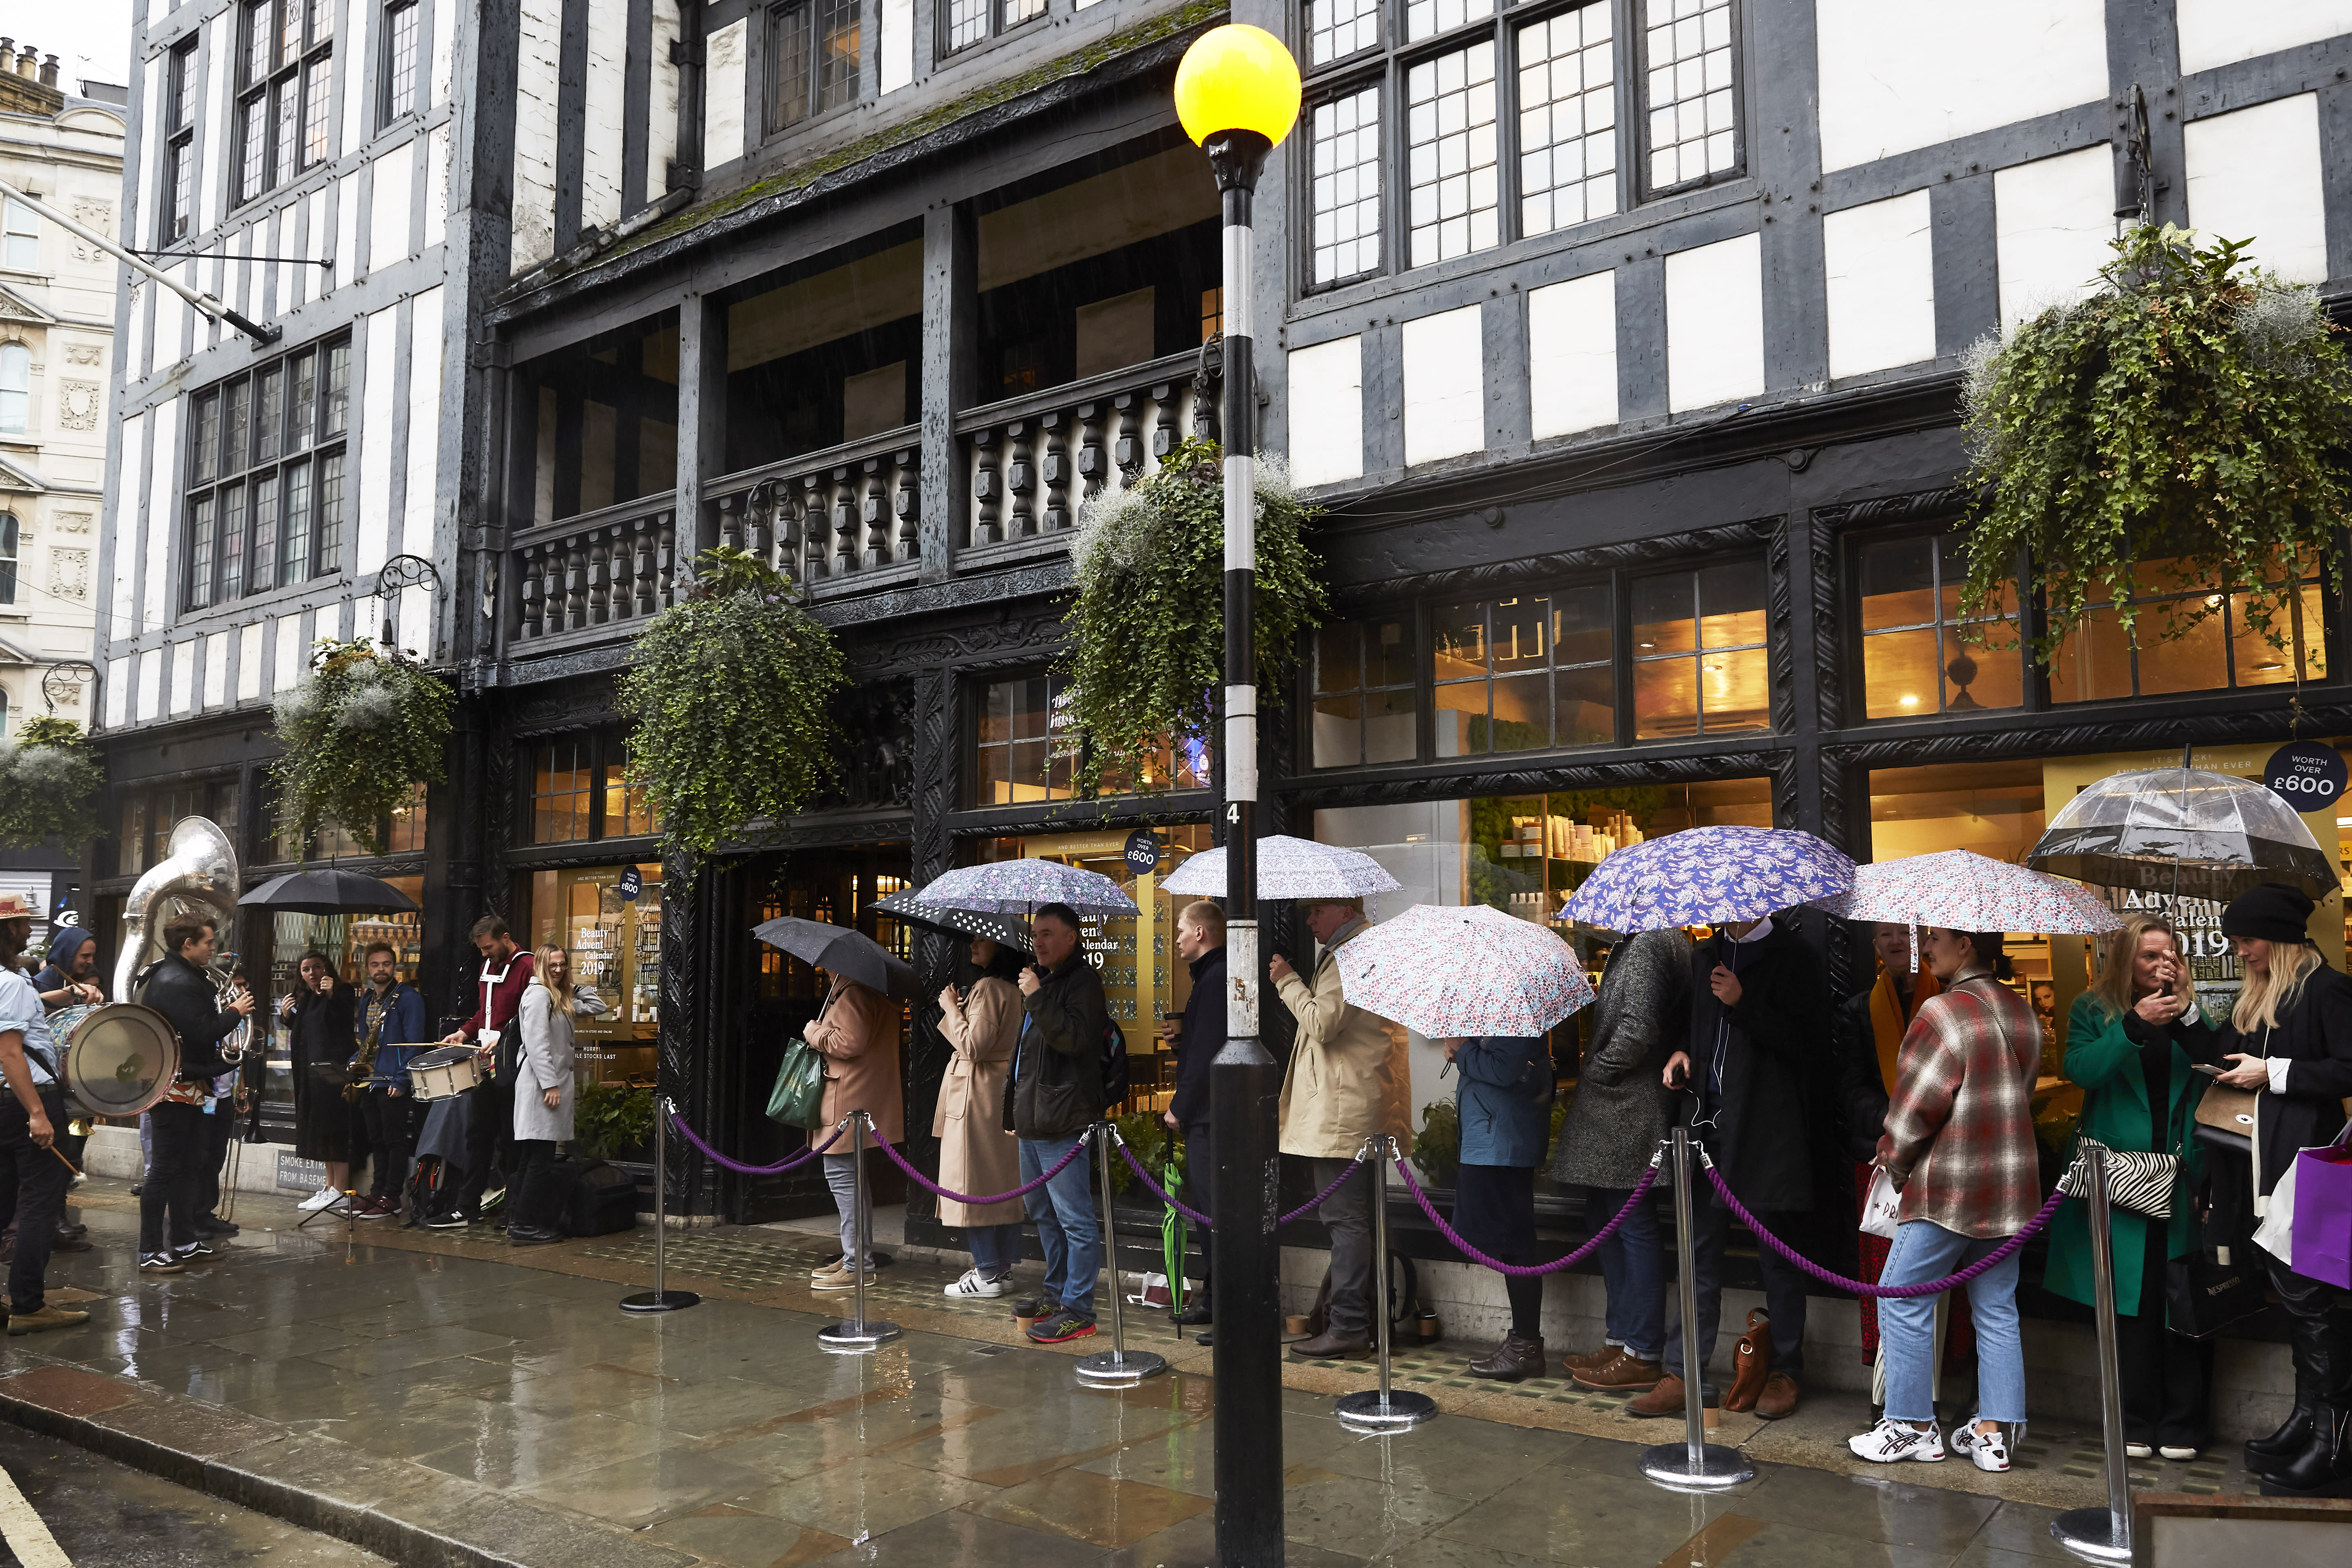 Eager customers queued in the rain from 6am to make sure they got this years advent calendar. [Photo: Liberty London]